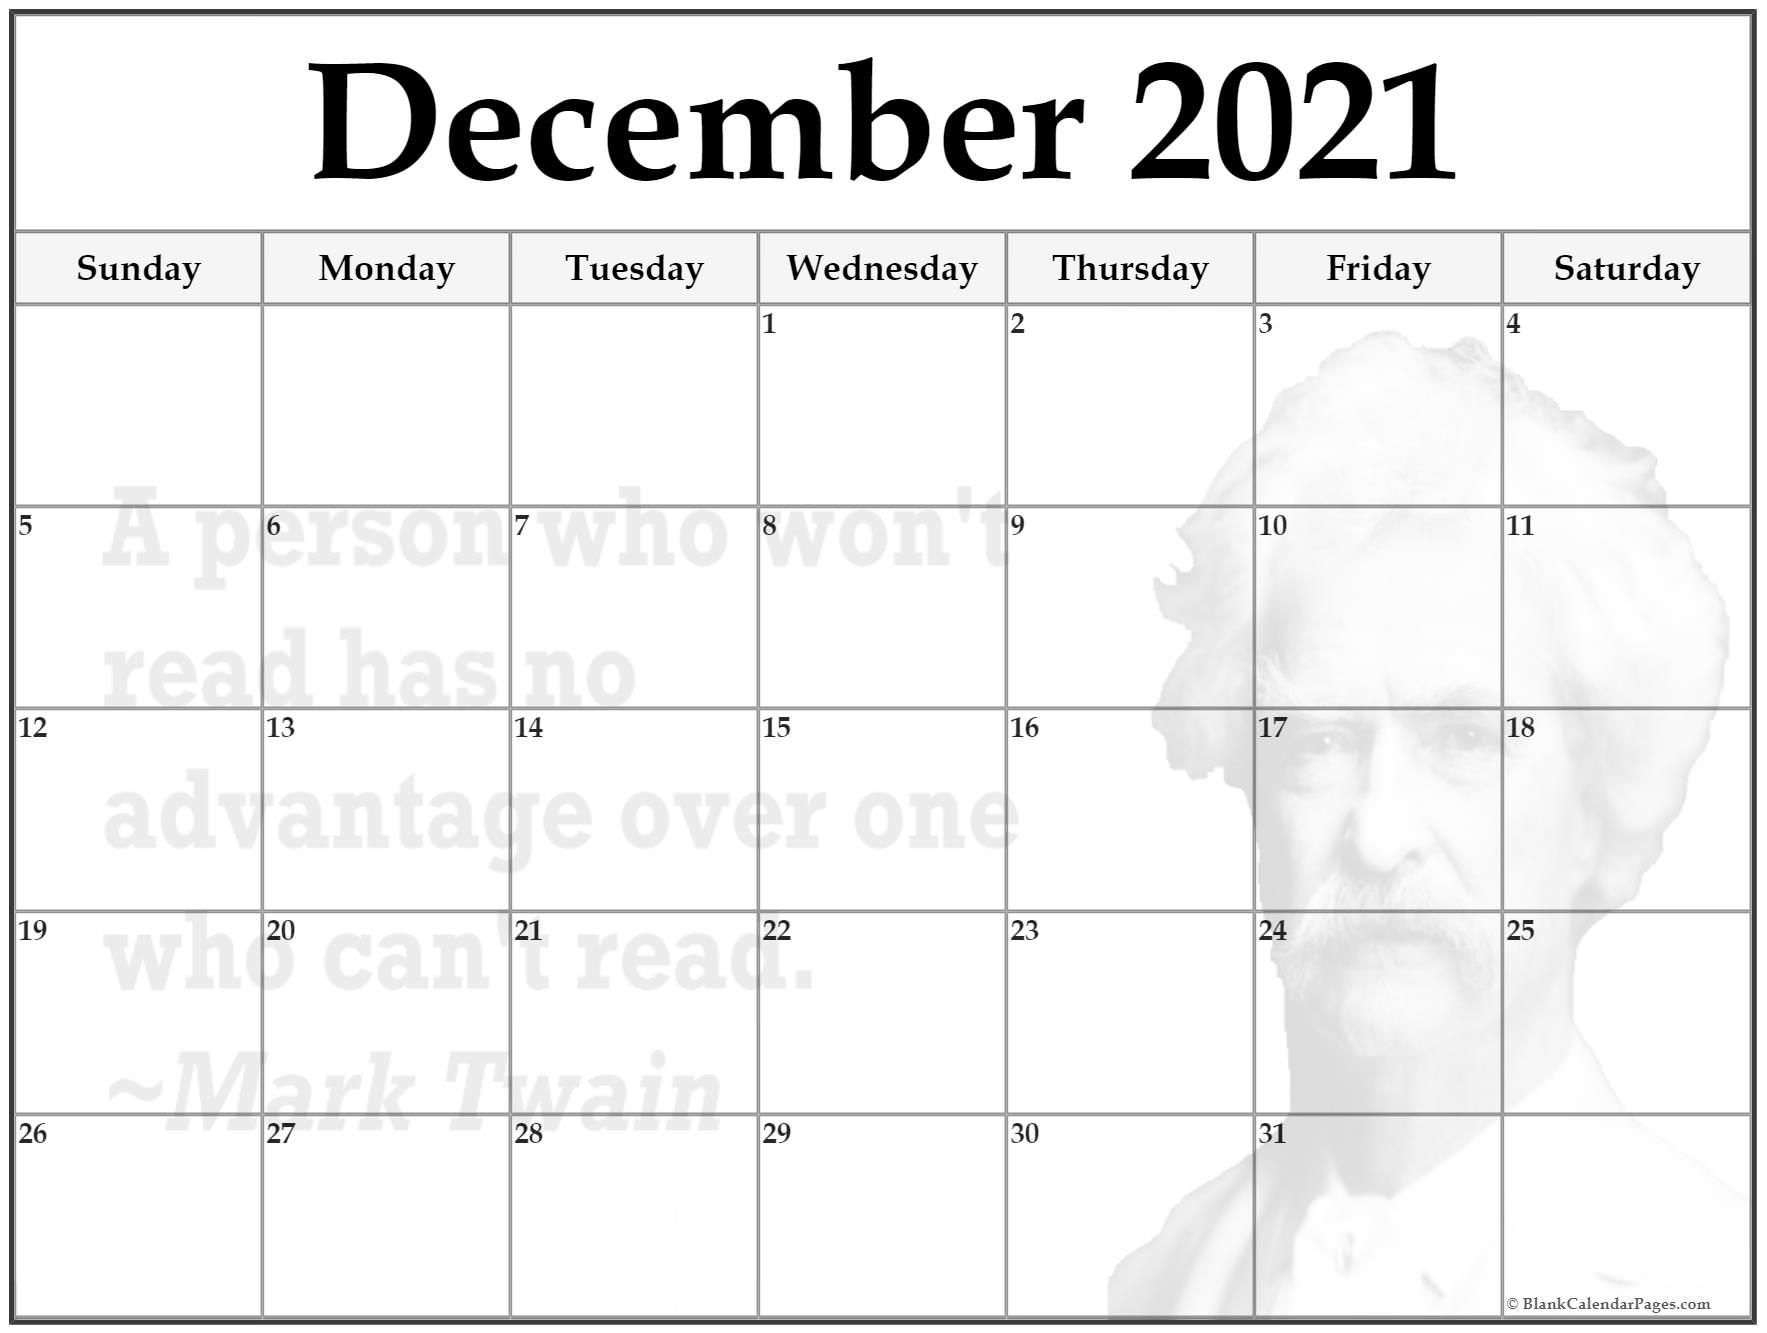 December 2019 printable quote calendar template. A person who won't read has no advantage over a person who can't read. ~Mark Twain